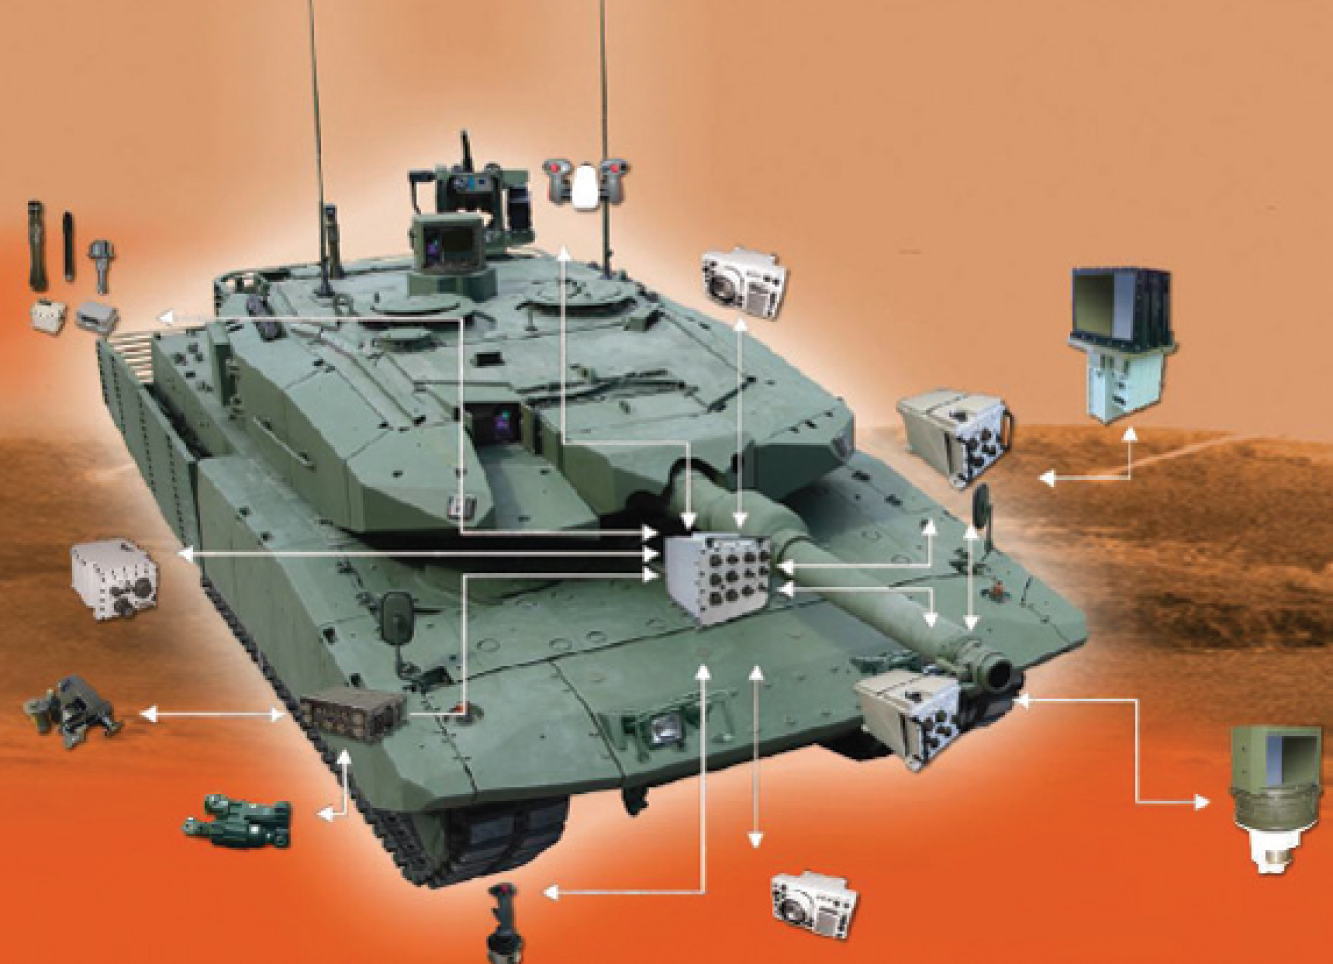 Solution for Performance Increase and Lifetime Enhancement of Altay Tank Electronic, Electro-Optic Systems and Leopard 2A4